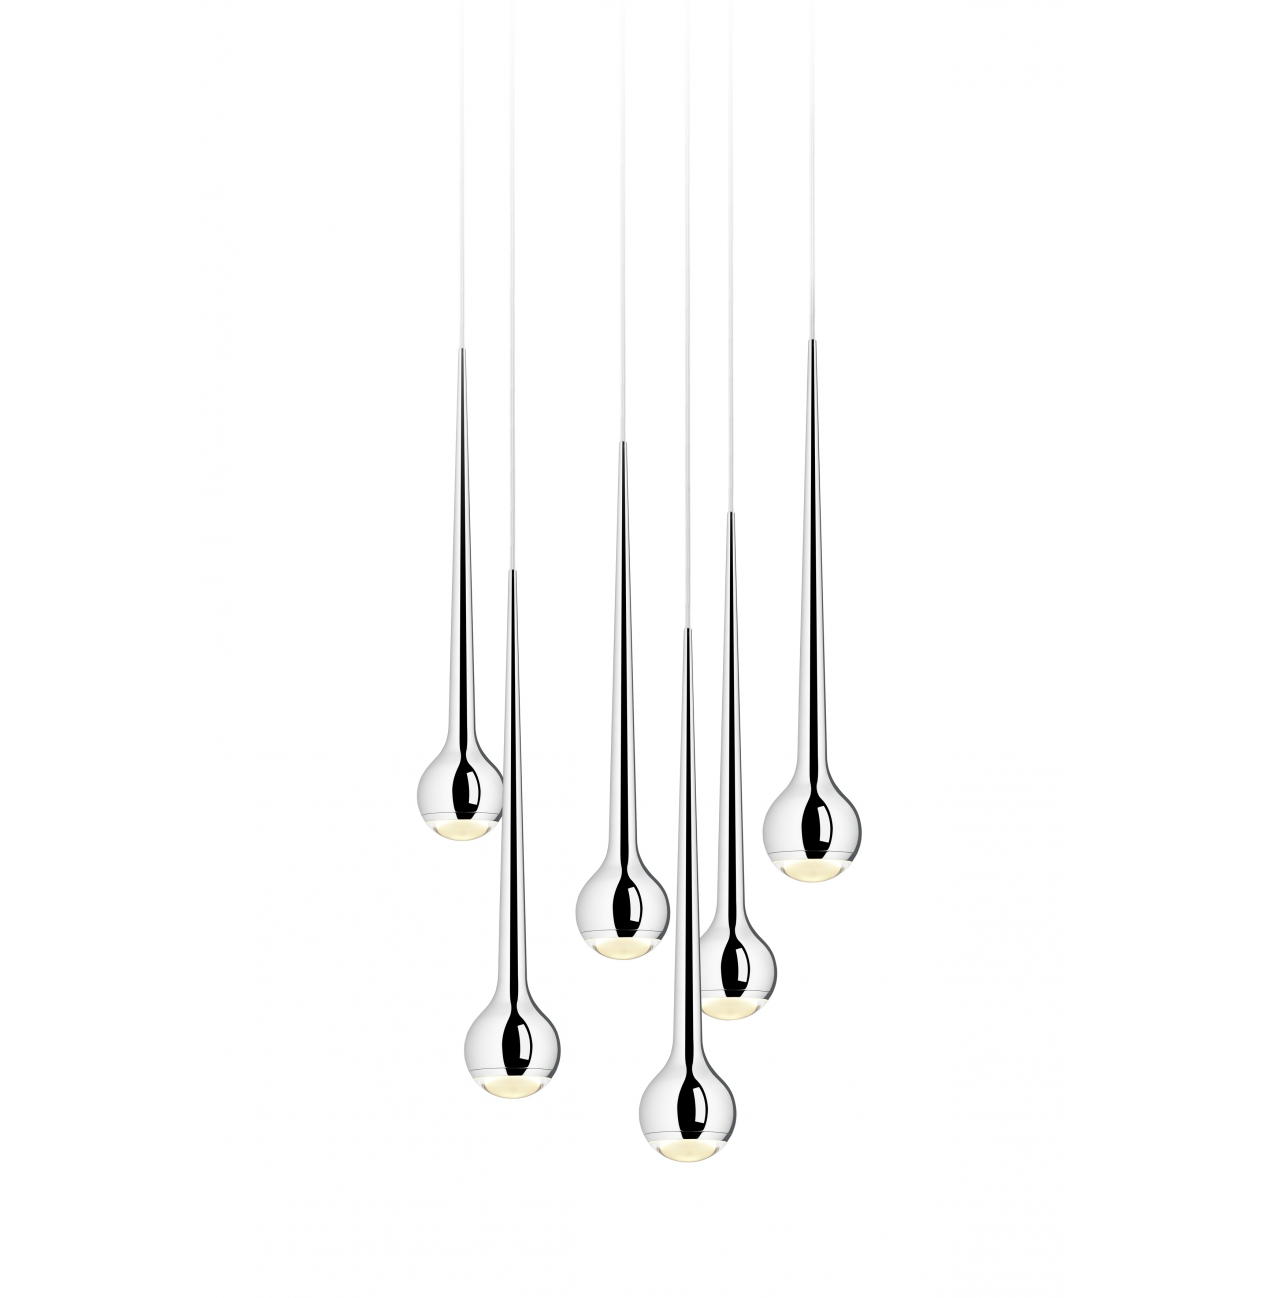 tobias grau hanglamp falling water 6 versteeg lichtstudio. Black Bedroom Furniture Sets. Home Design Ideas